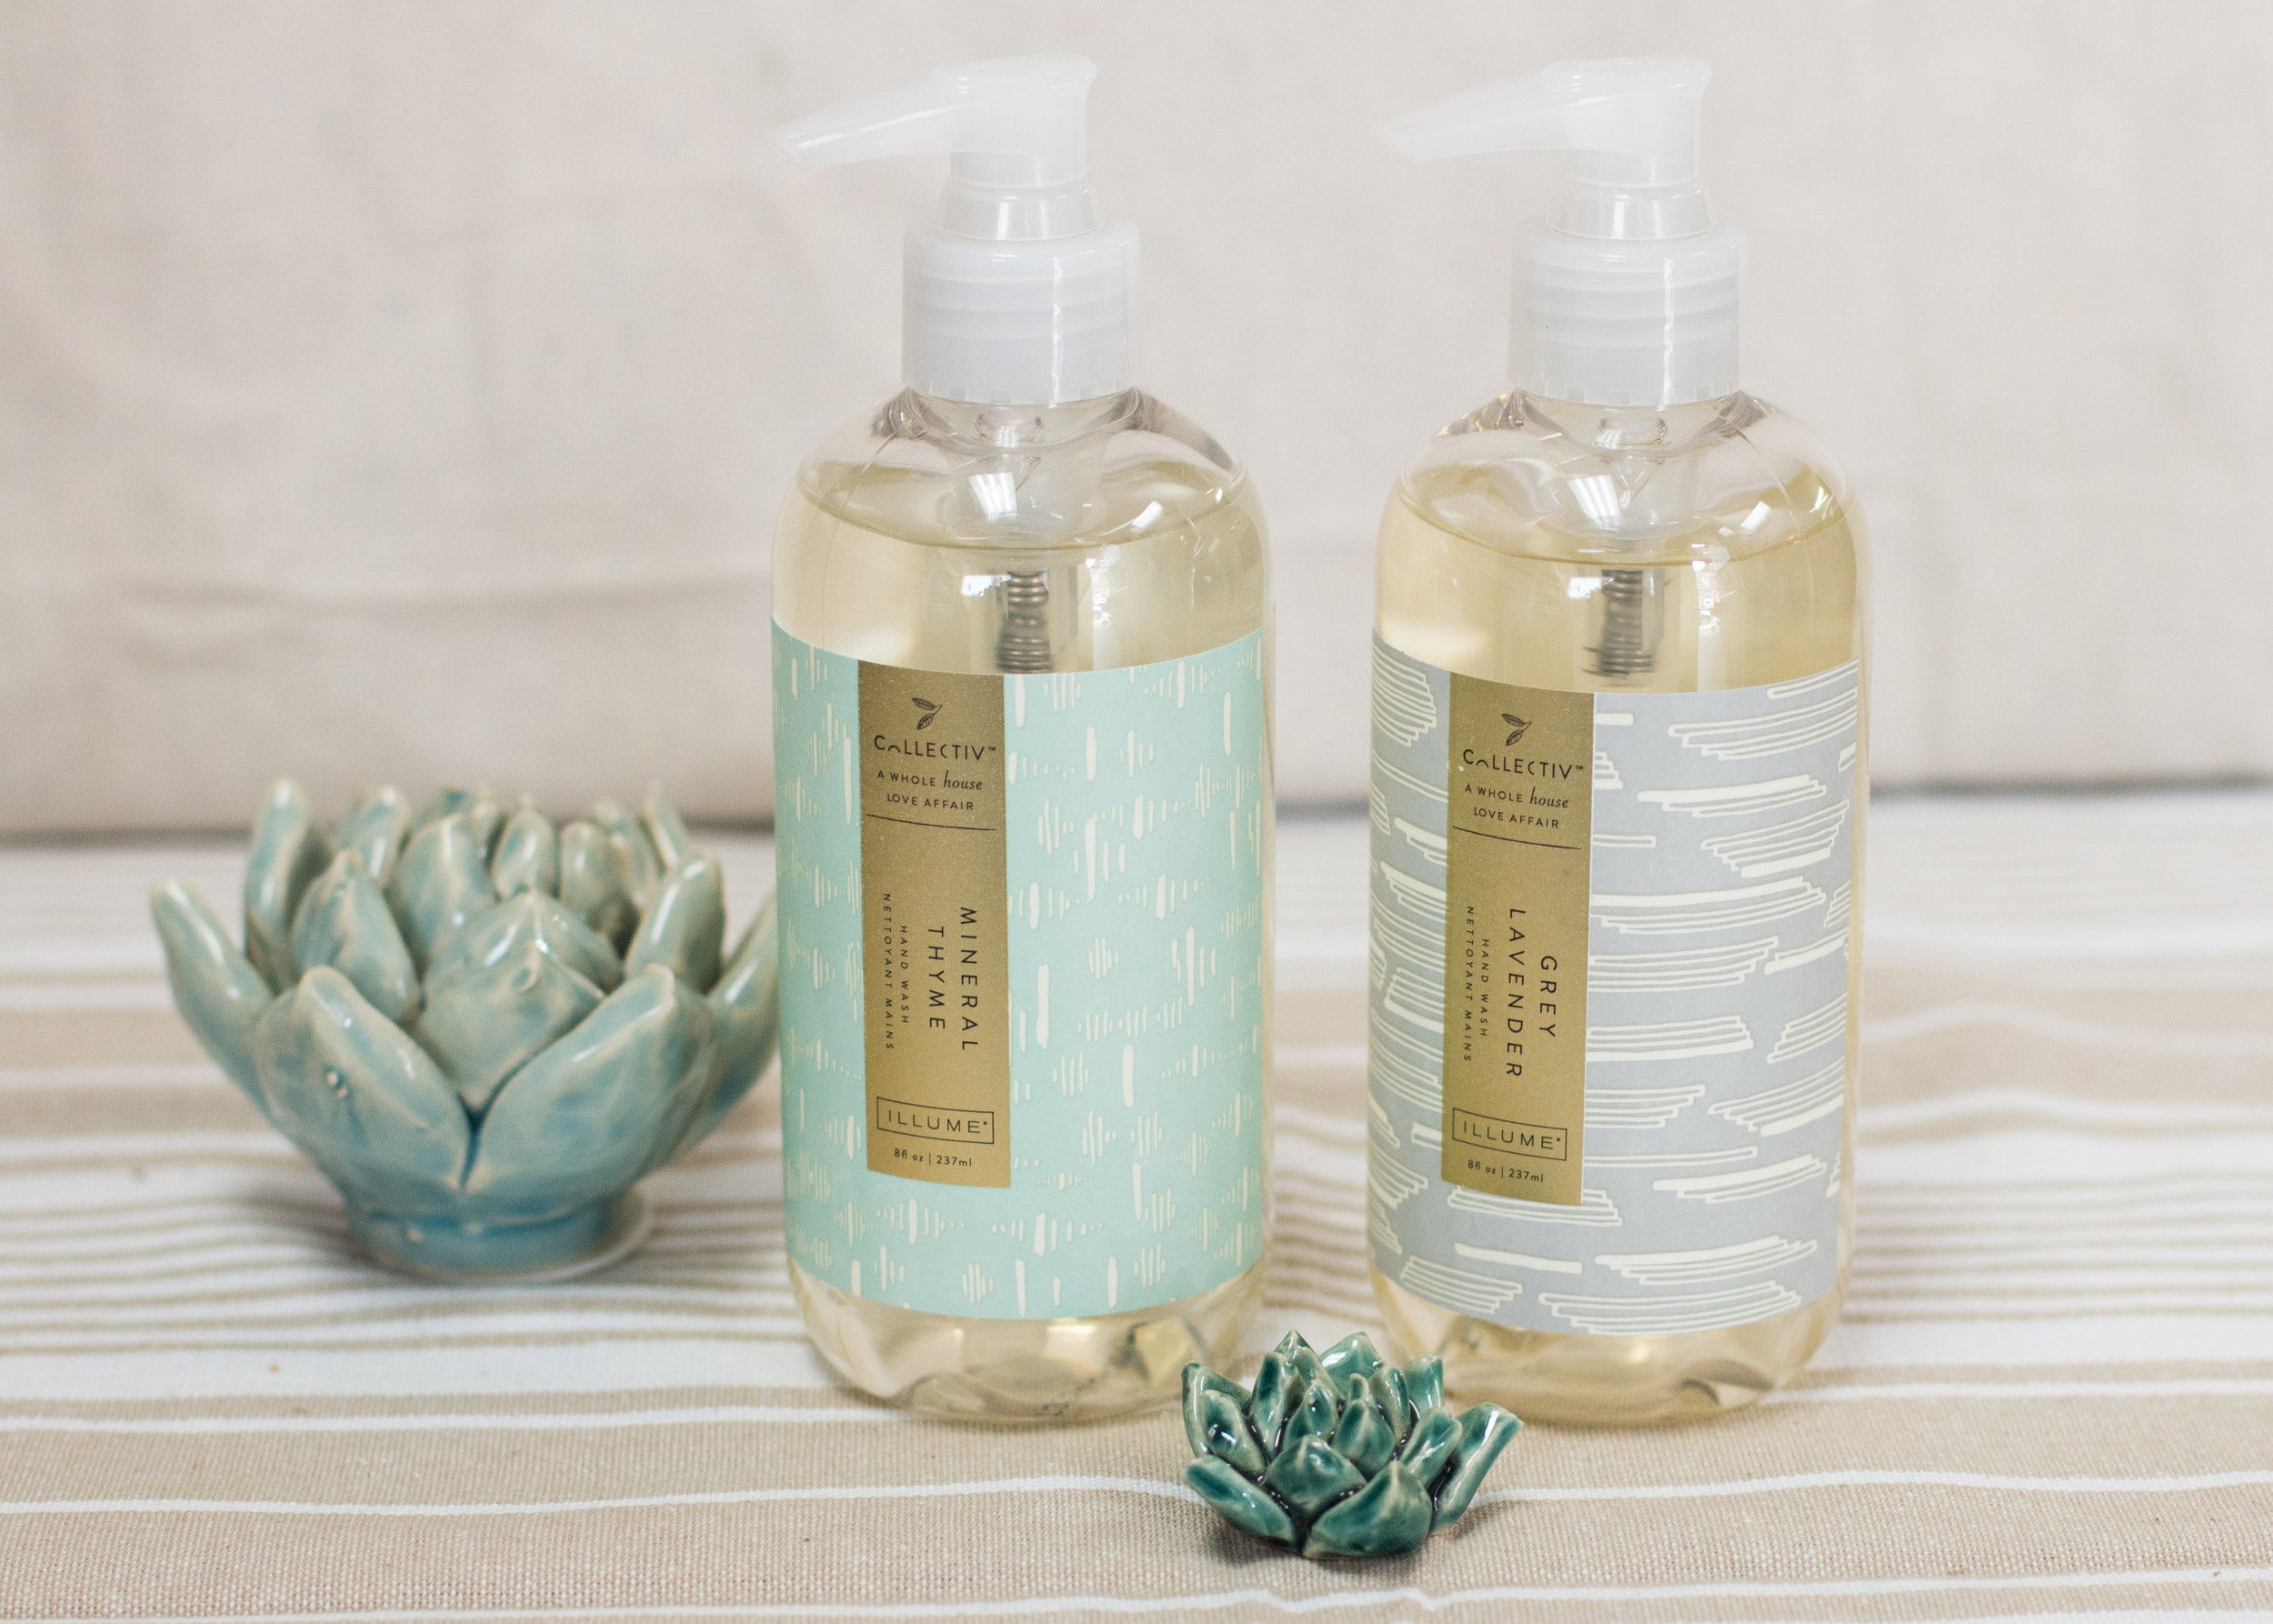 Sometimes the smallest changes can make life infinitely better - these hand soaps are just that! From our popular illume line, these mineral thyme and grey lavender pump soaps smell dreamy. we also have a complimenting counter spray to make a complete set!